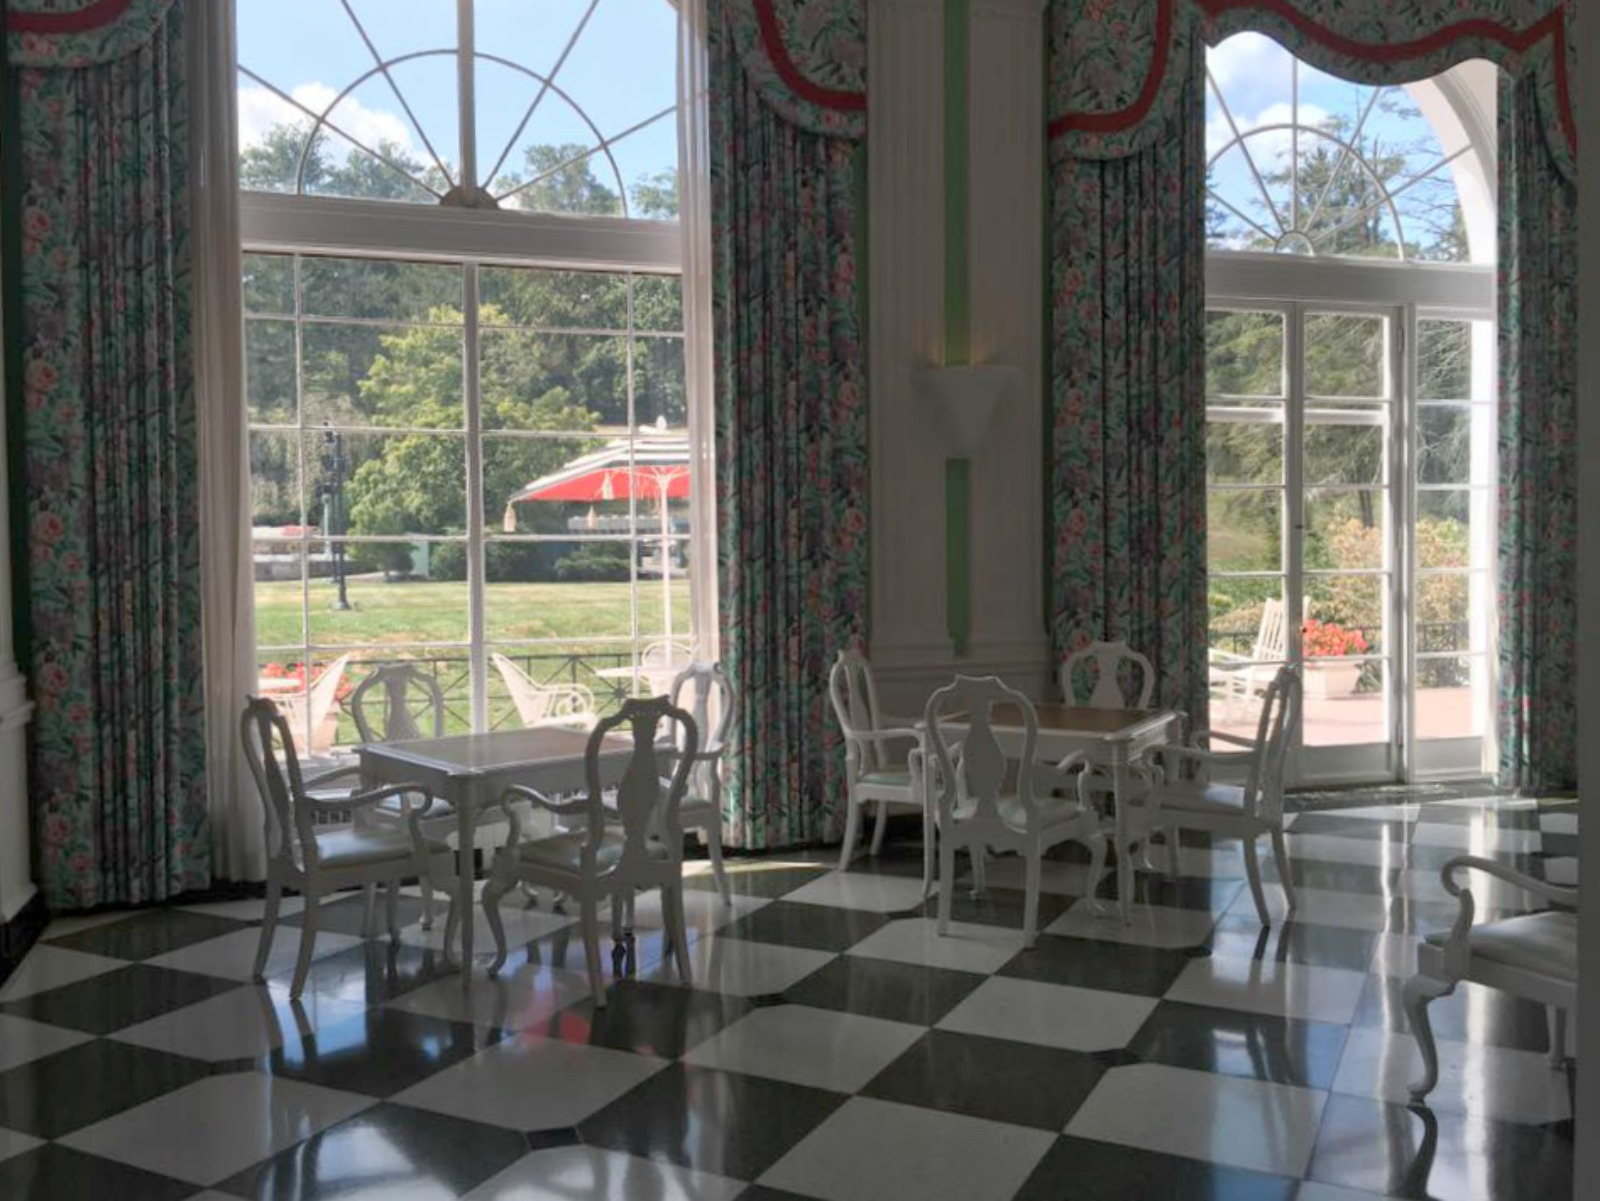 ANNIVERSARY TRIP TO THE GREENBRIER RESORT